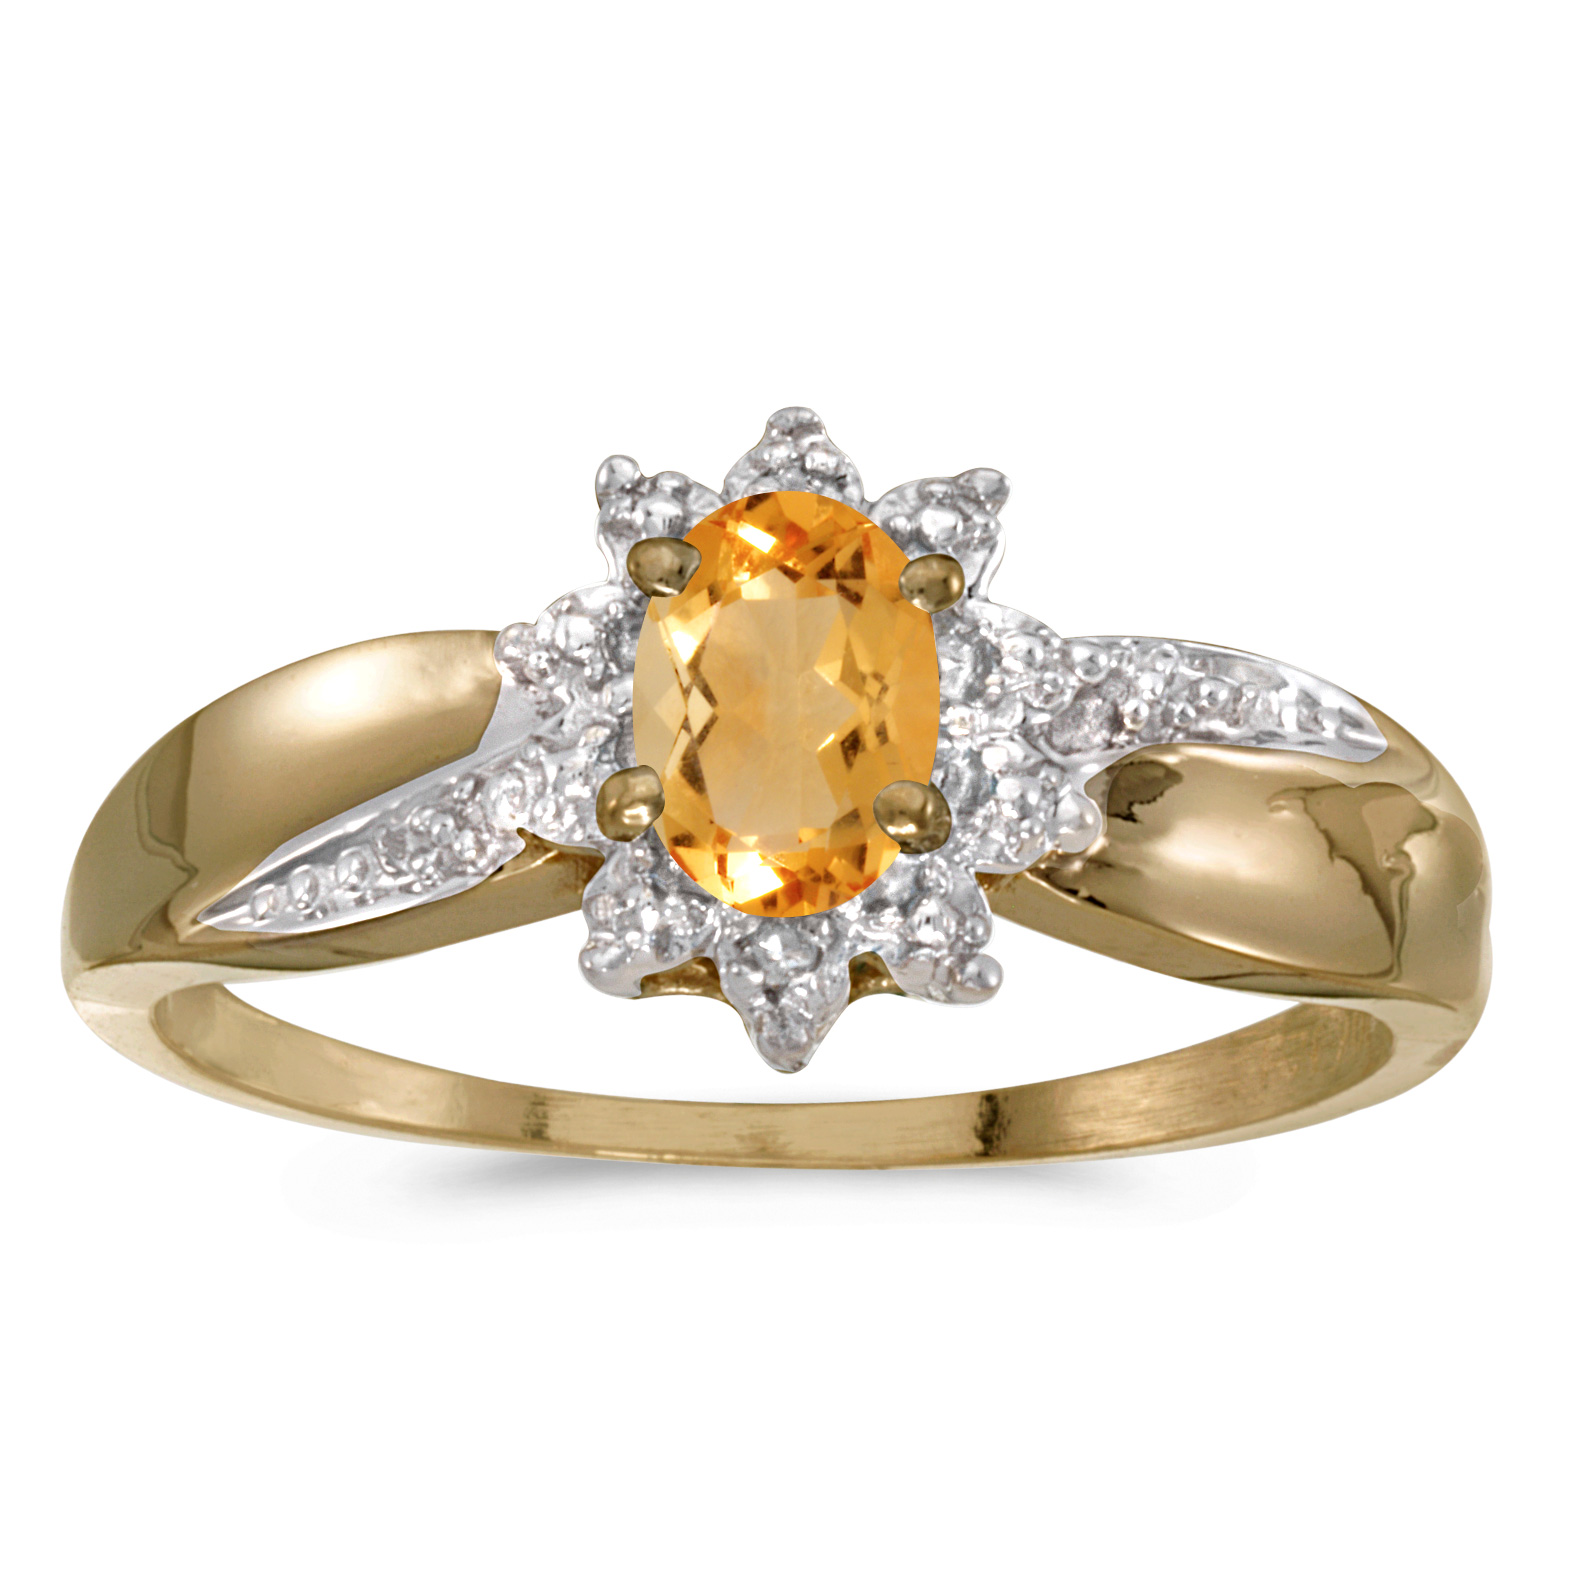 10k Yellow Gold Oval Citrine And Diamond Ring by